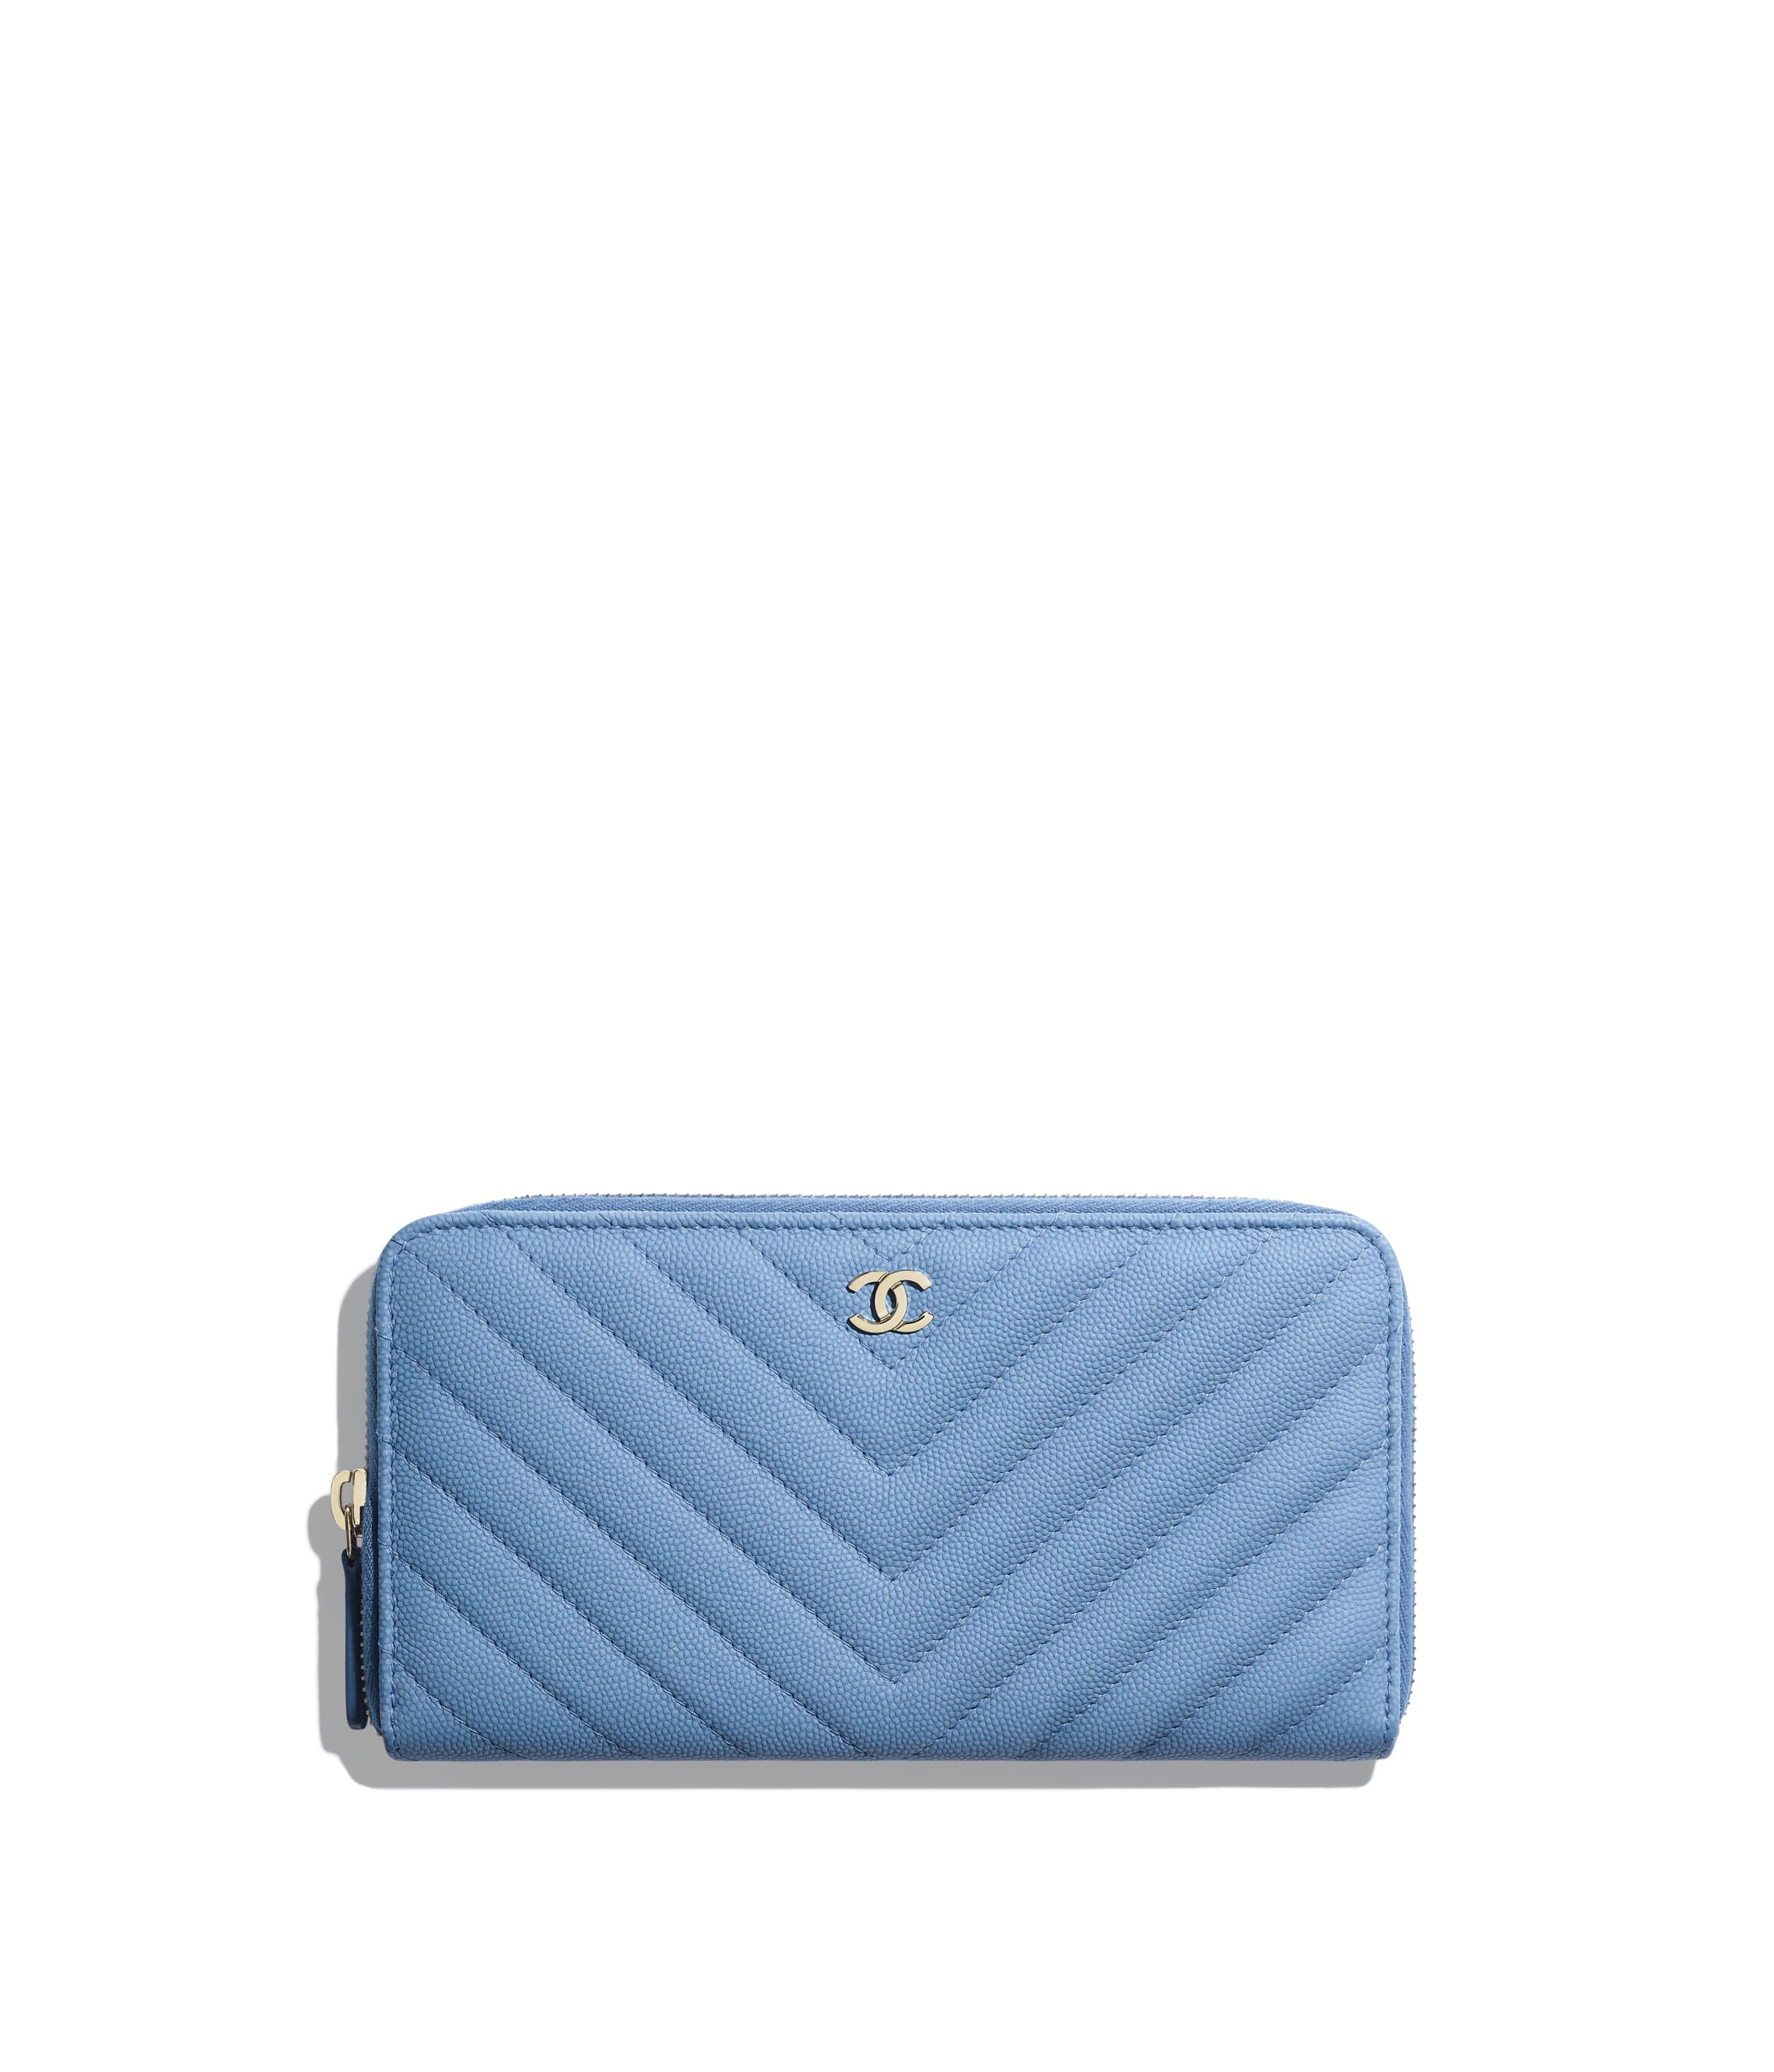 421c09ec4b08b0 Long Wallets - Small Leather Goods - CHANEL